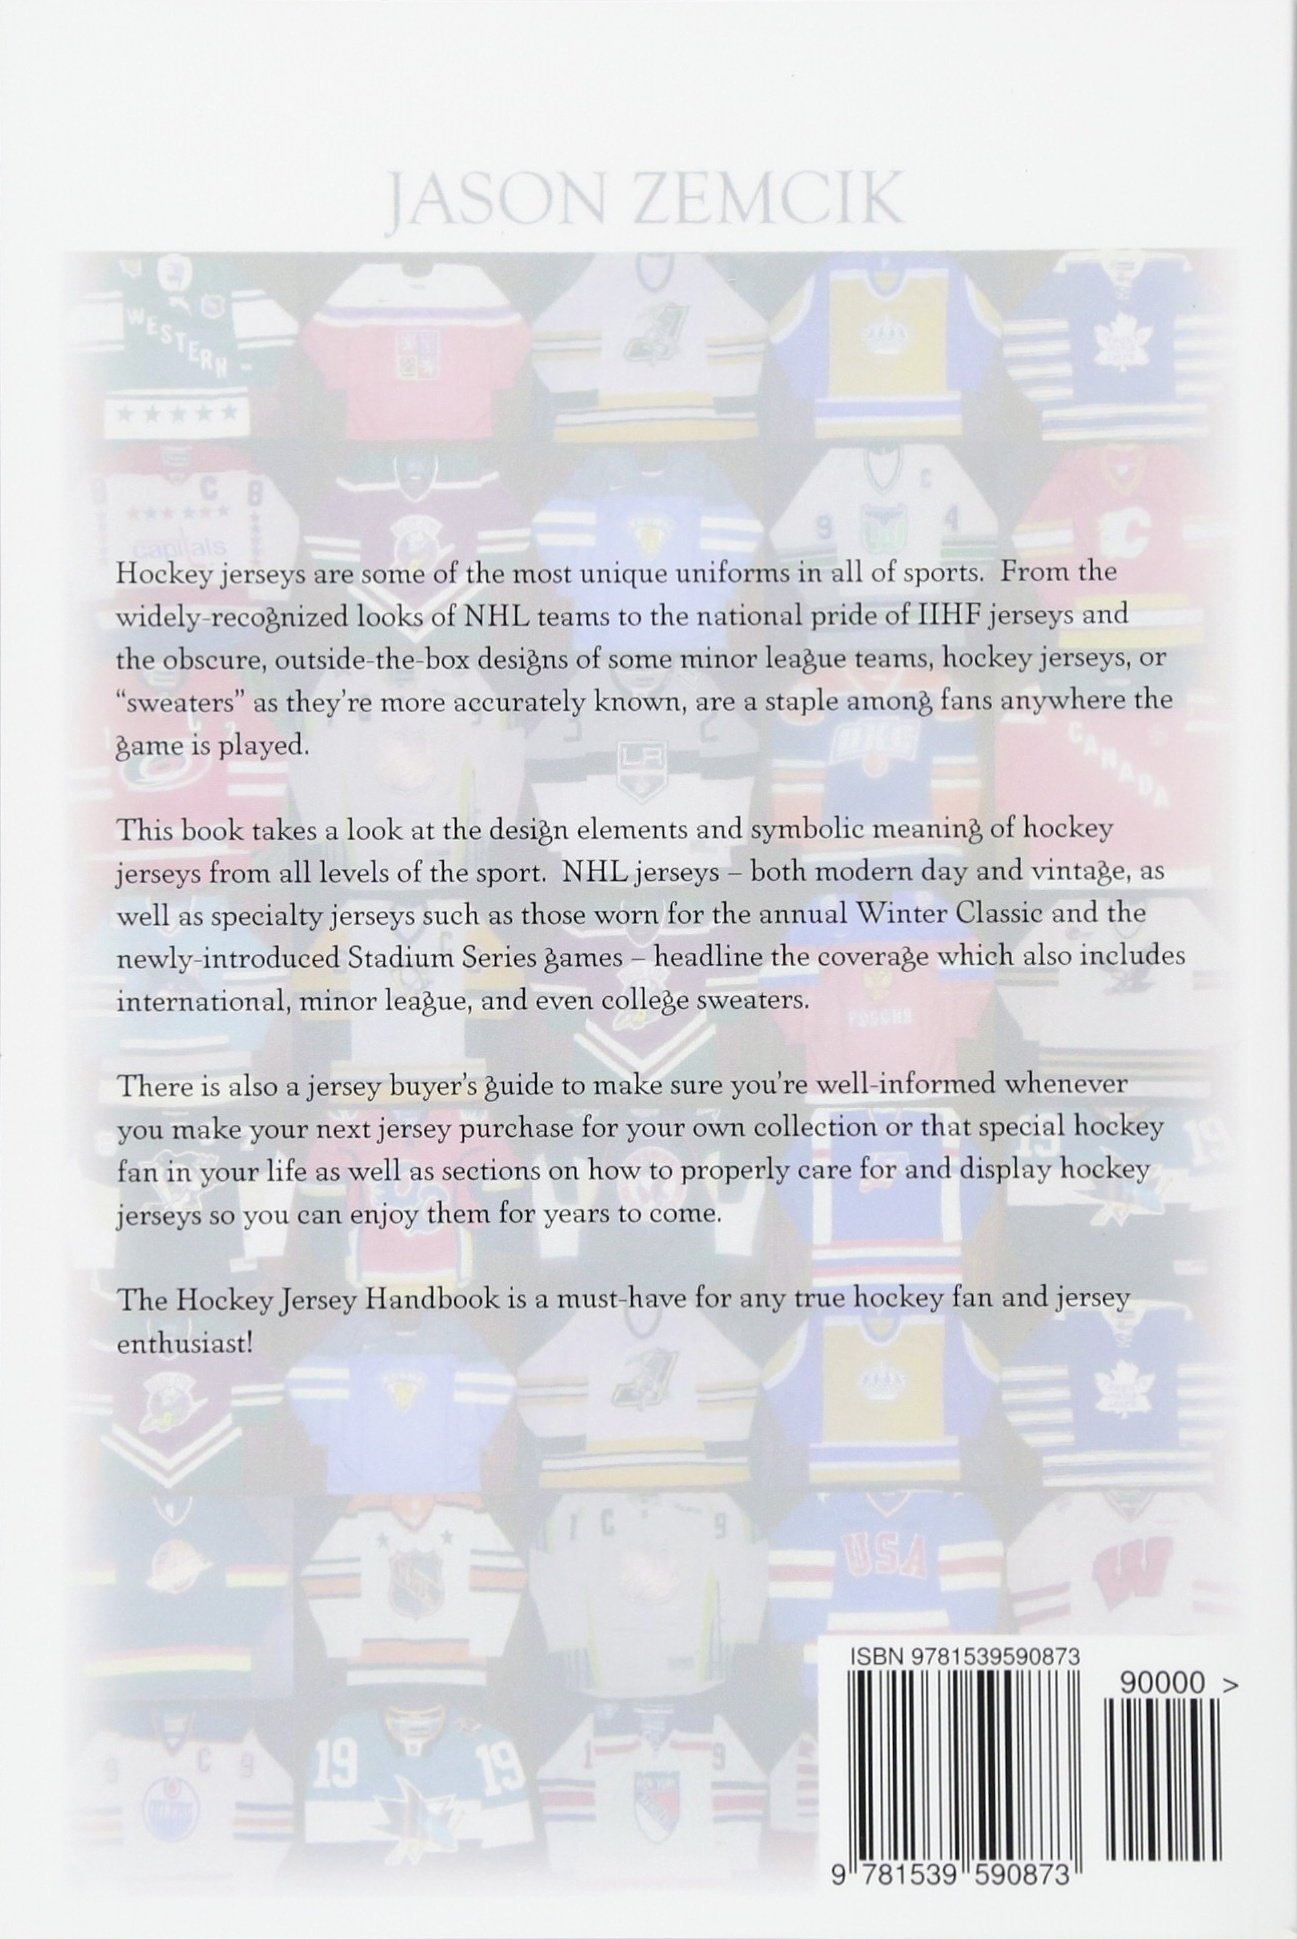 The Hockey Jersey Handbook  A Guide to Collecting and Caring For Jerseys  From Throughout the Game  Jason Zemcik  9781539590873  Amazon.com  Books dfb8129fc